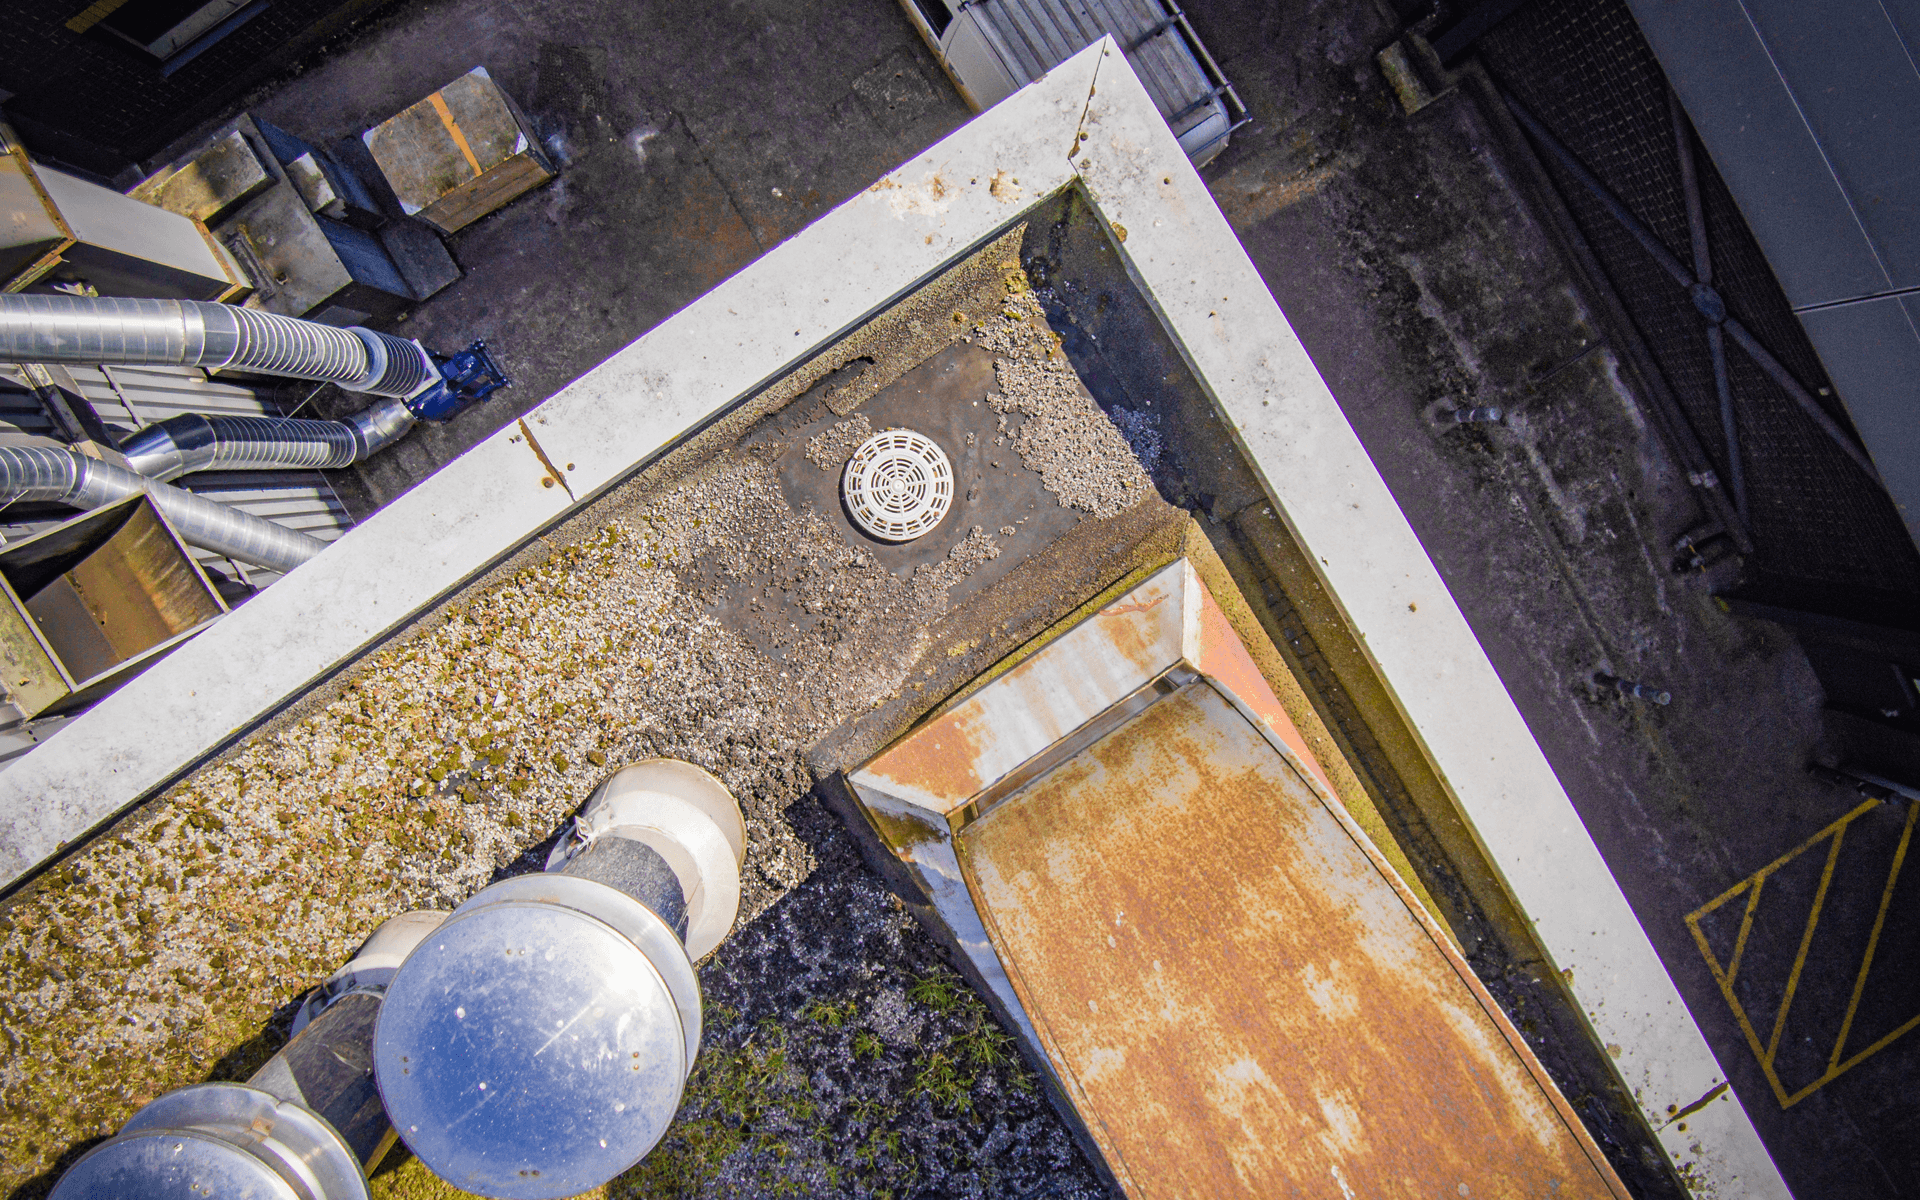 """DJI Inspire 1"" aerial drone photo for a roof survey in Midsomer Norton showing a drain and chimneys"